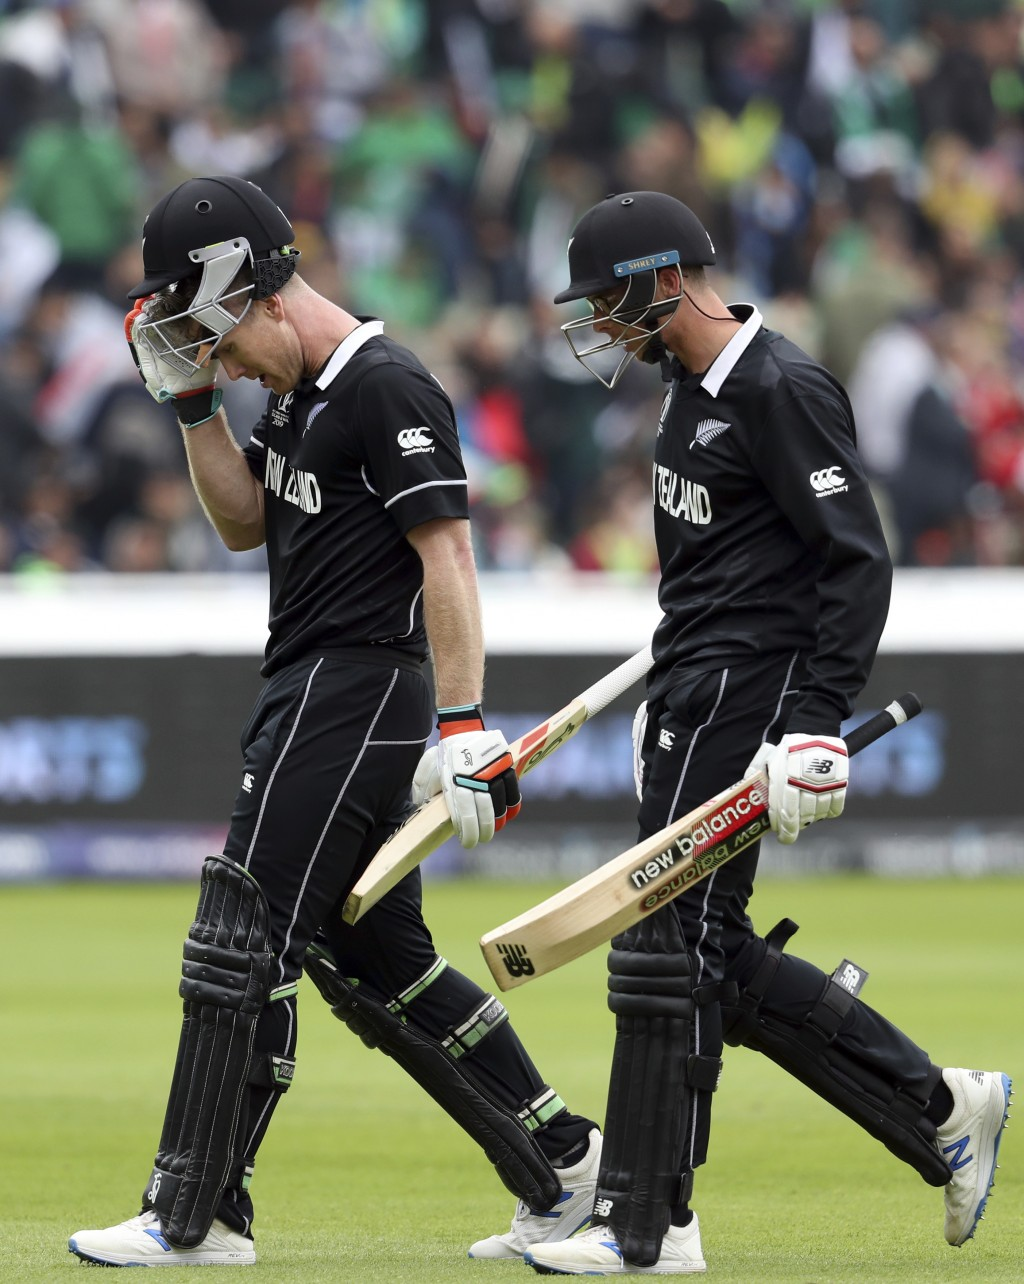 New Zealand's batsman James Neesham, left, with teammate Mitchell Santner leave the crease at the end of their innings during the Cricket World Cup ma...